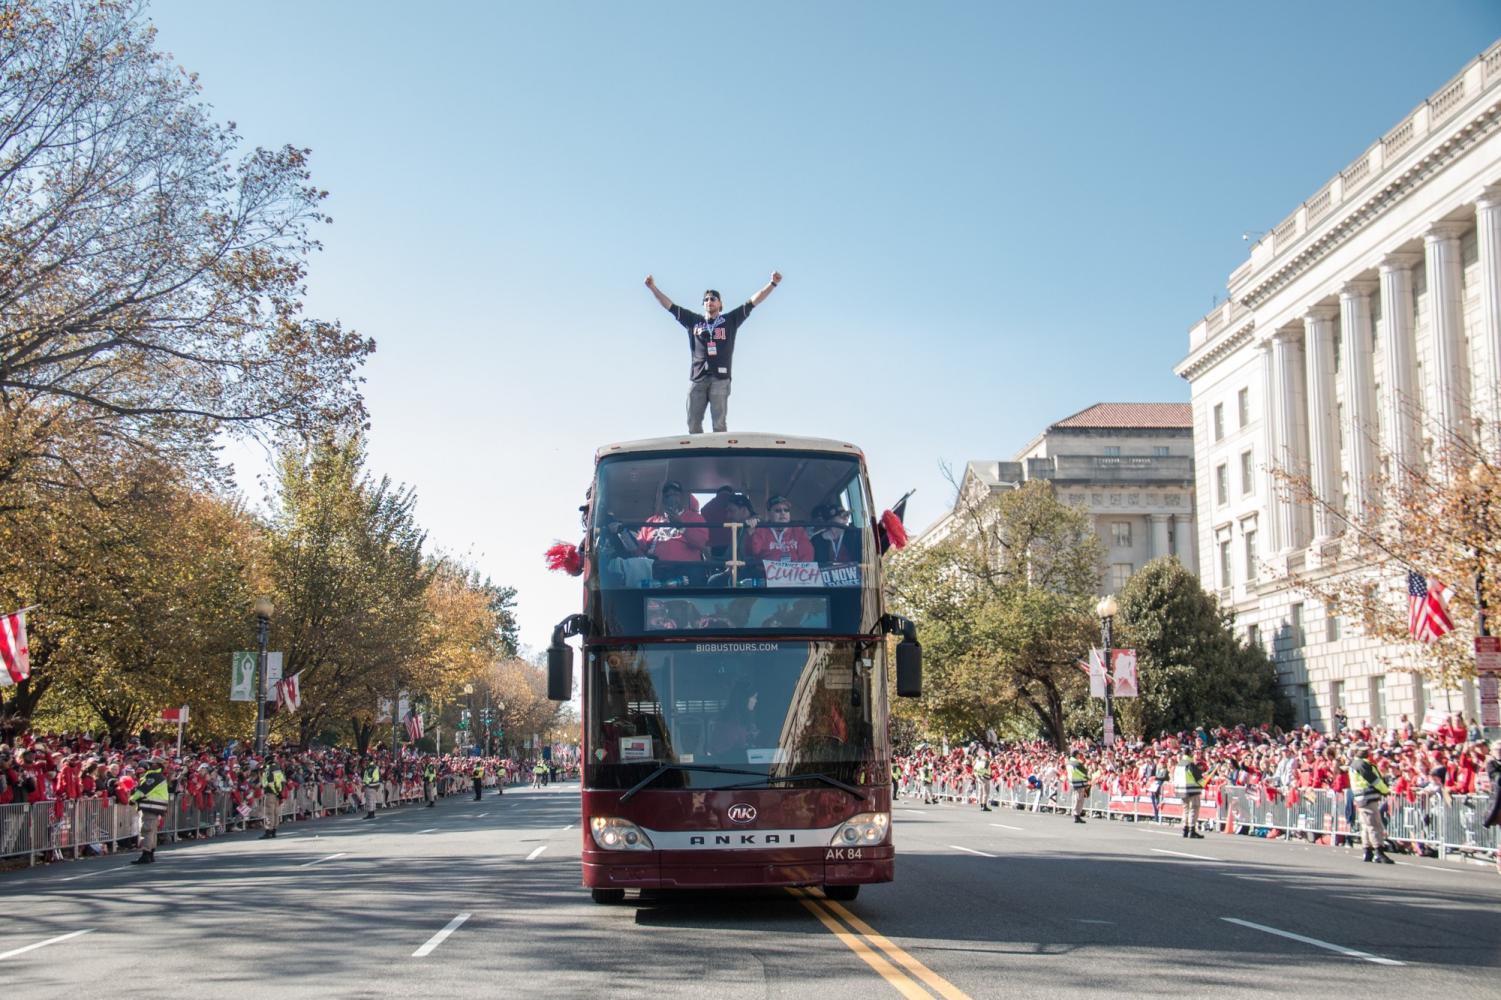 Nationals pitcher Max Scherzer stands atop of the bus driving down Constitution Avenue during the championship parade on Nov. 2 to celebrate the Nationals winning the World Series. Scherzer had 3-0 postseason record during the 2019 season. Photo credit: Logan Bik